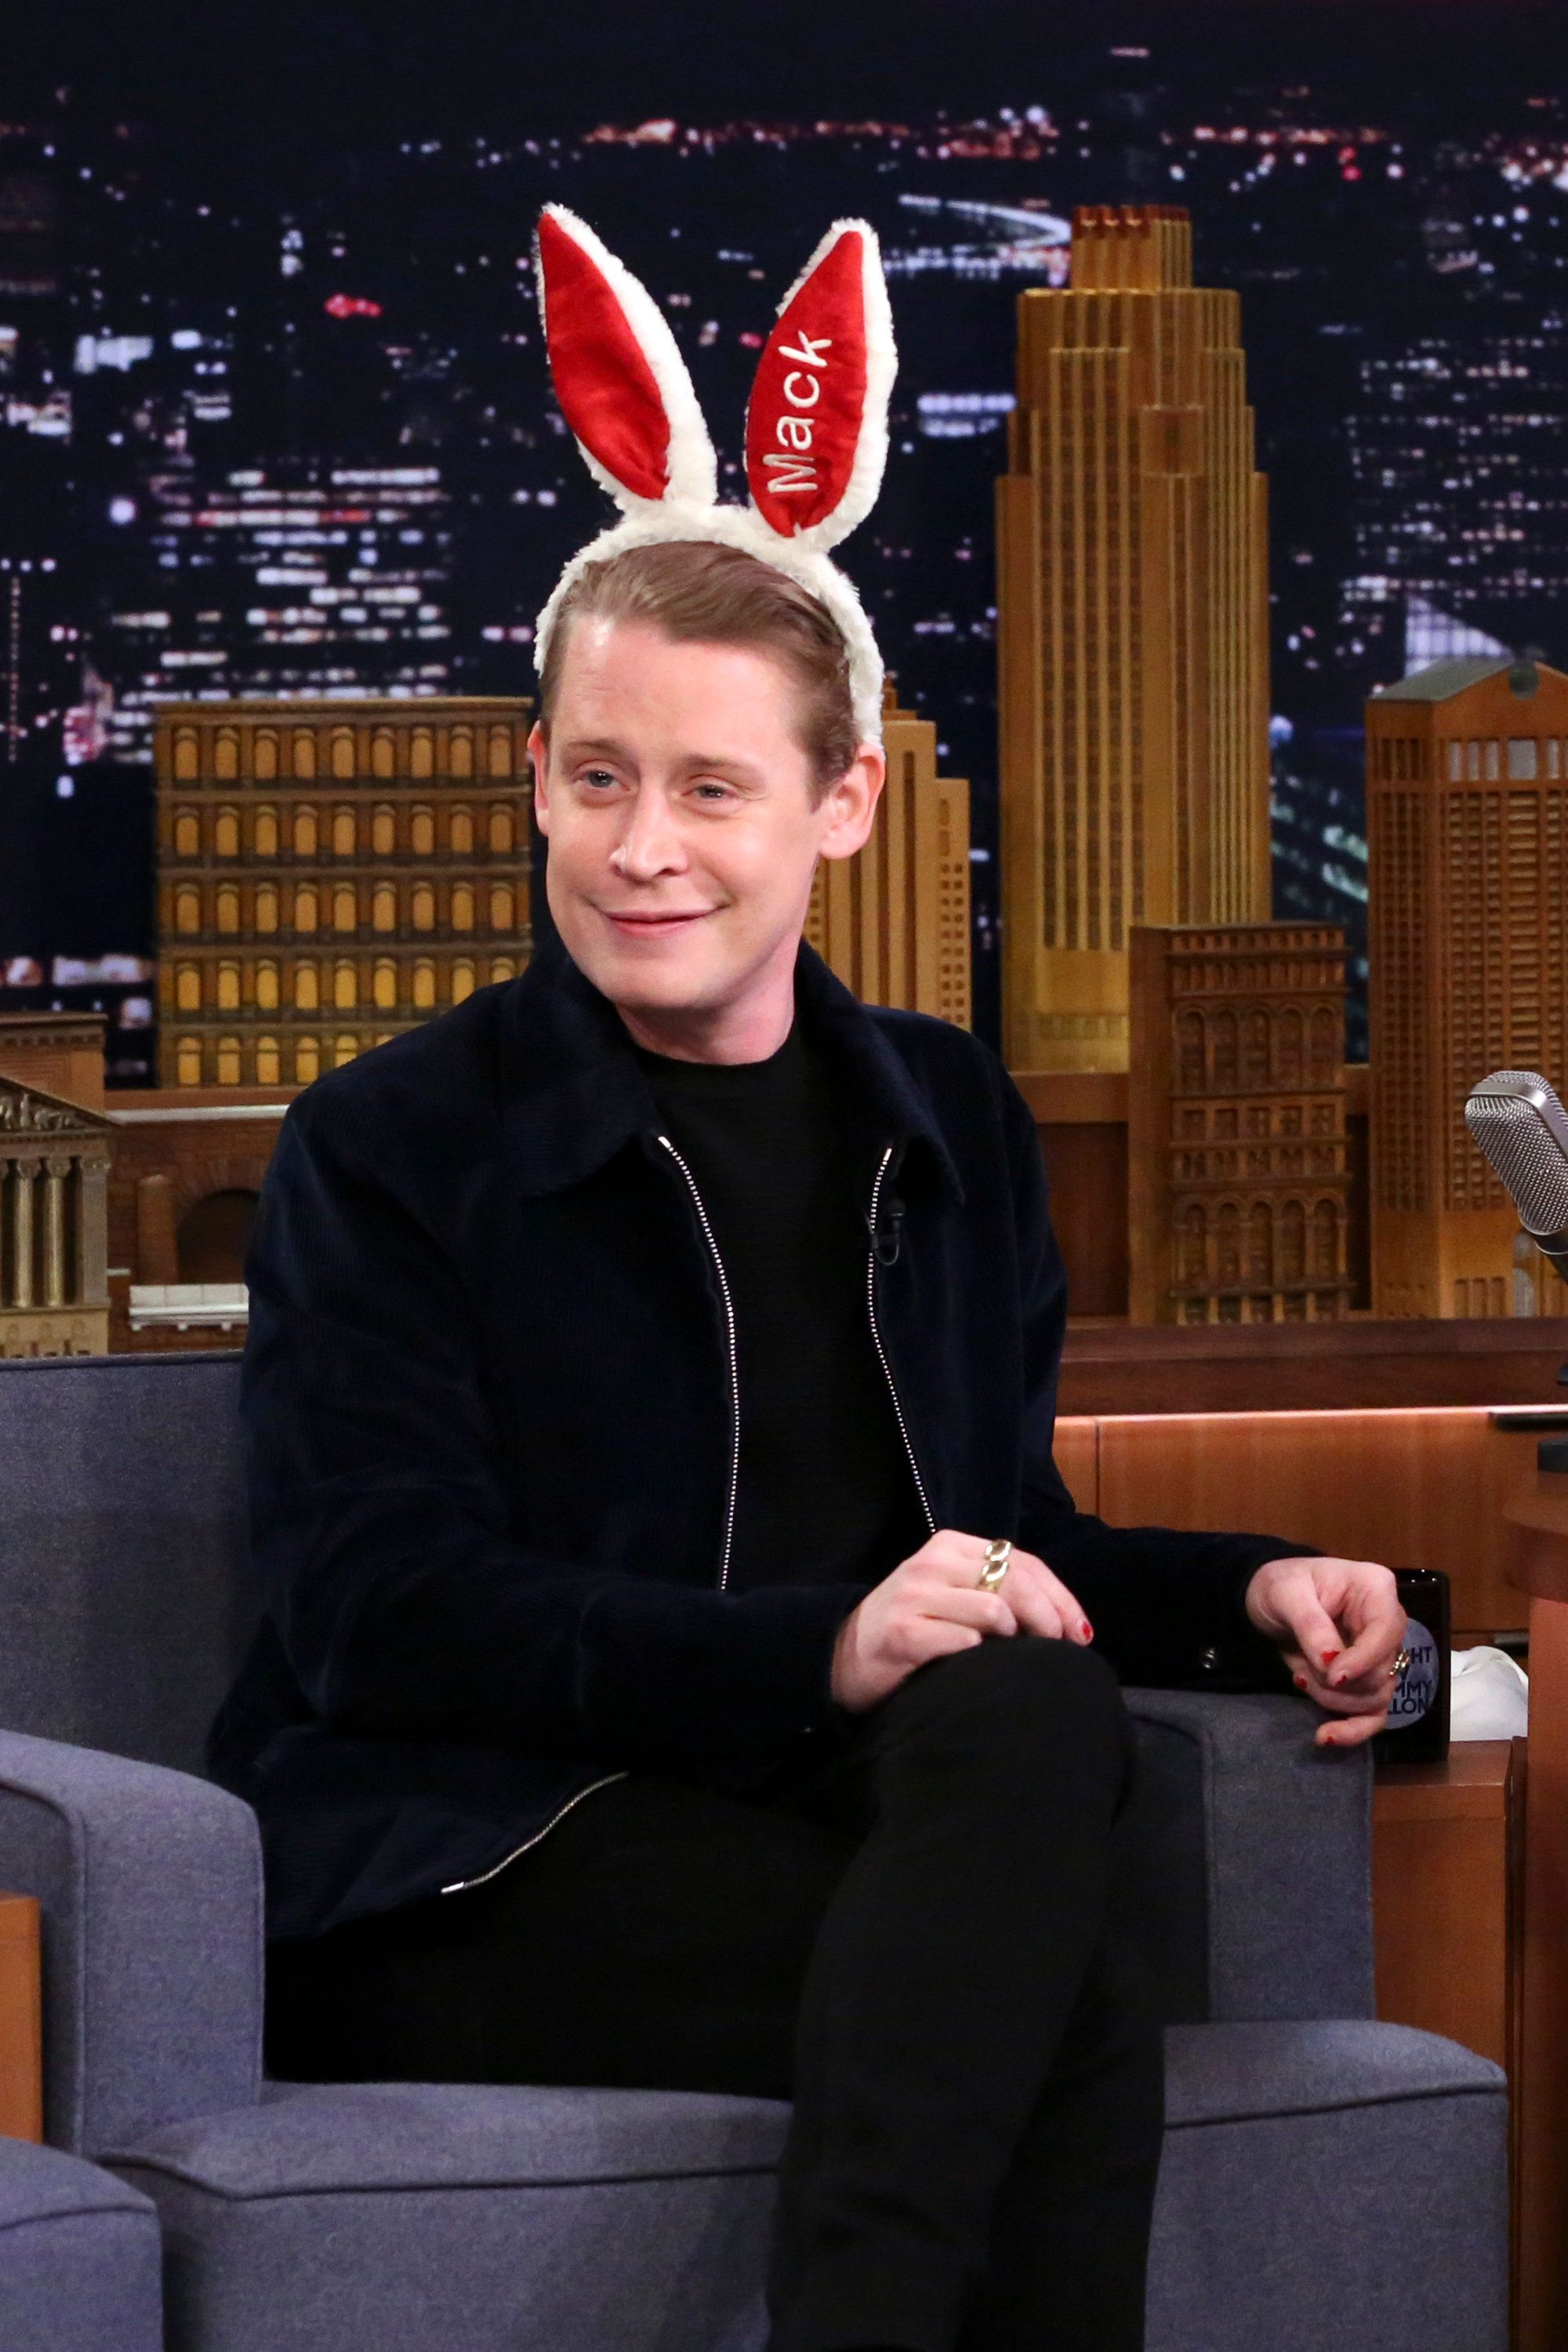 Macaulay Culkin Is Legally Changing His Name To Something